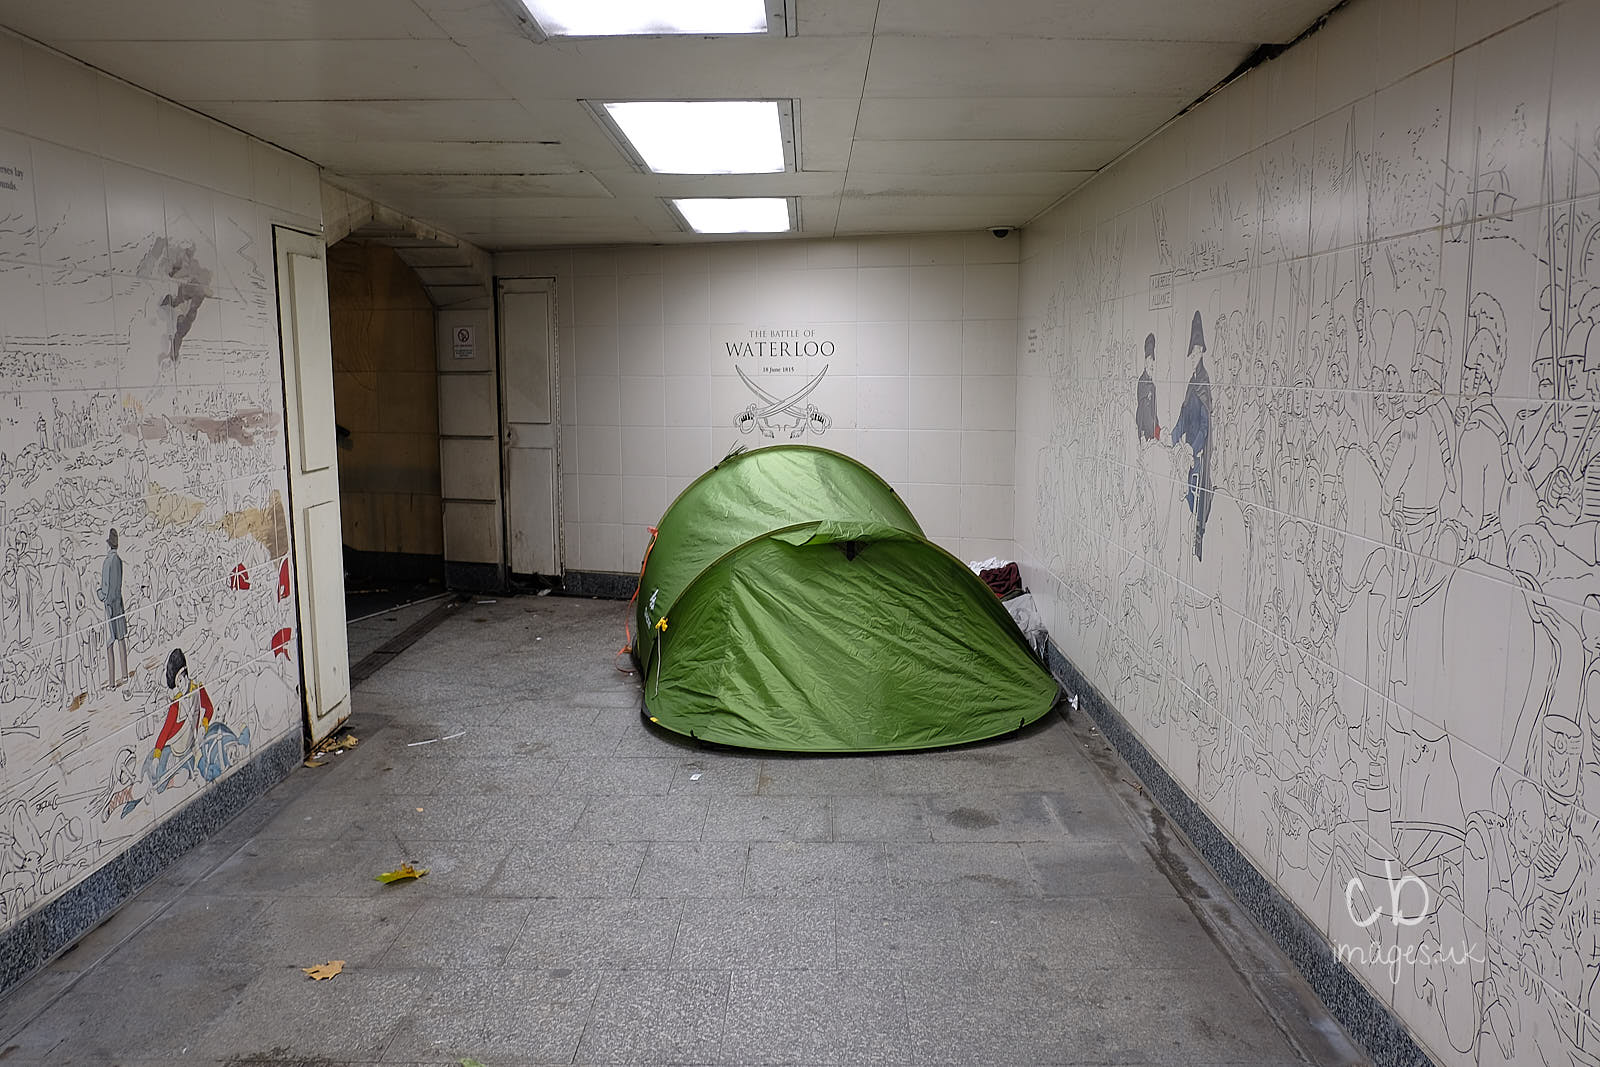 A green tent in a subway passage.